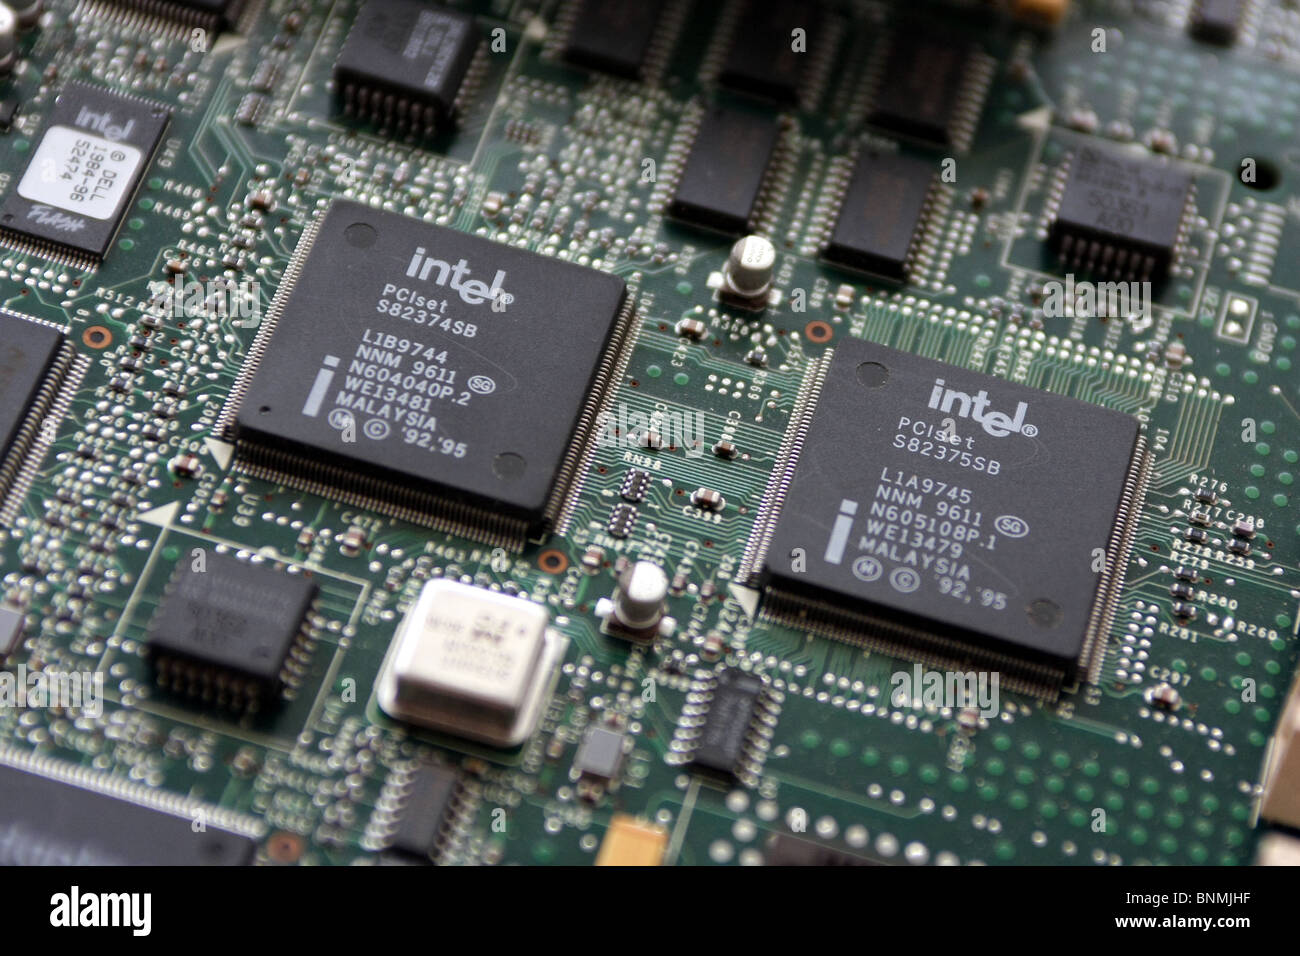 Computer PCB with two Intel PCI CPU control chips surface mounted on ...